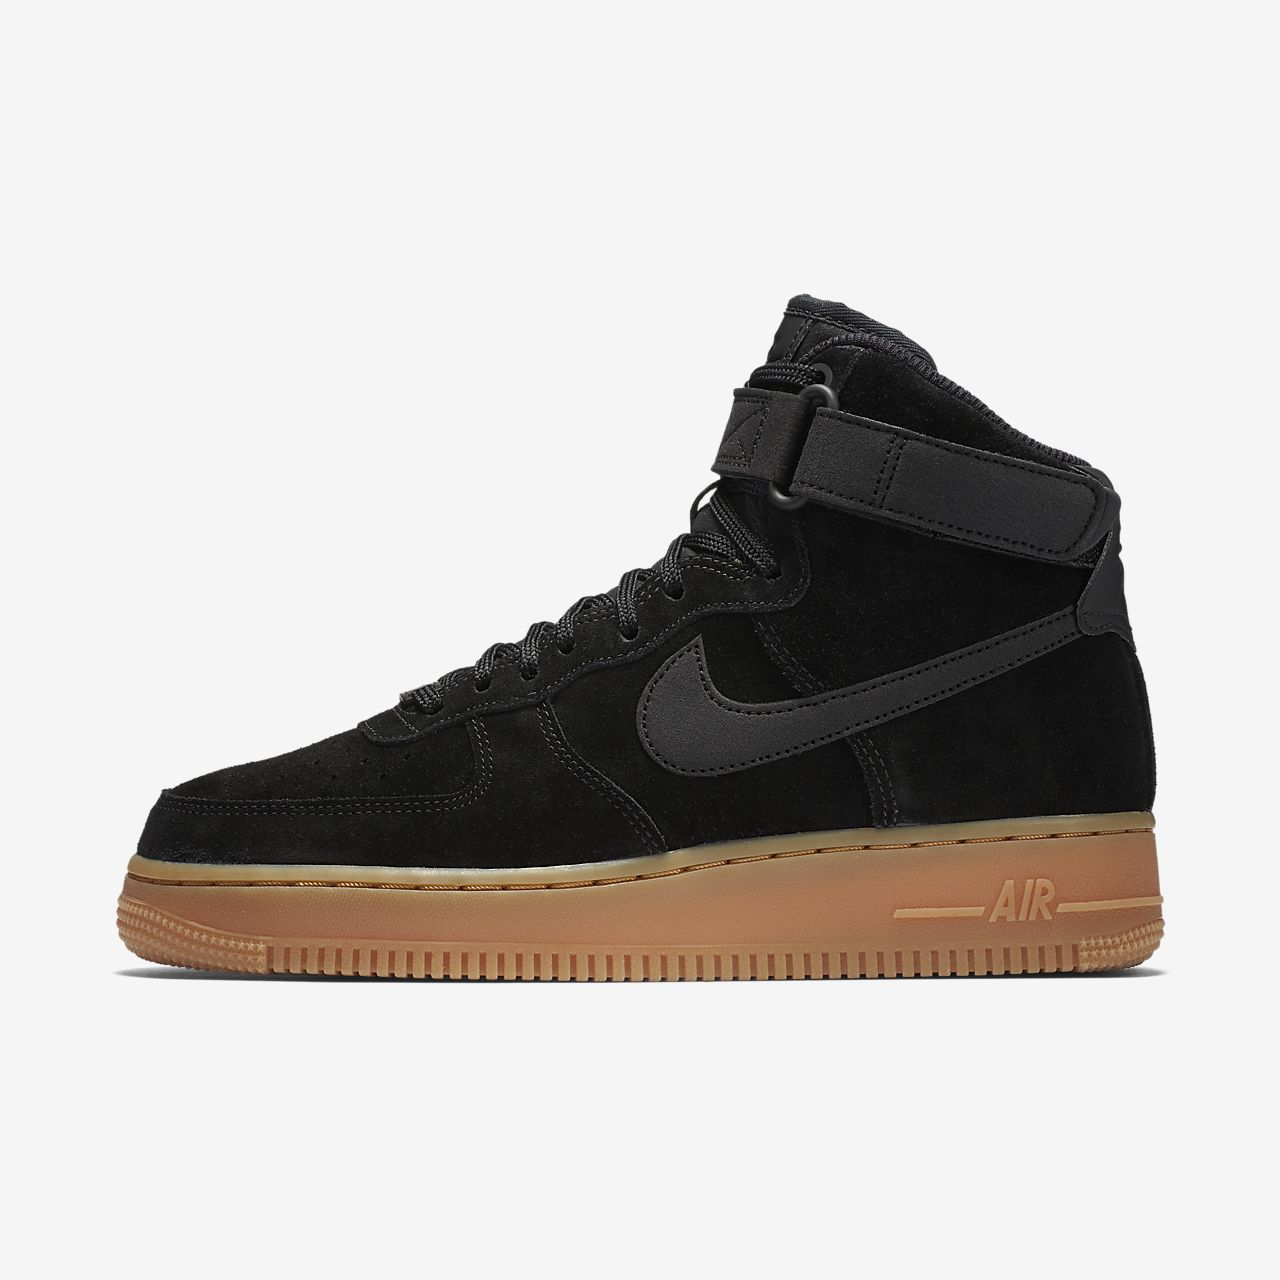 nike air force 1 flyknit black high nz